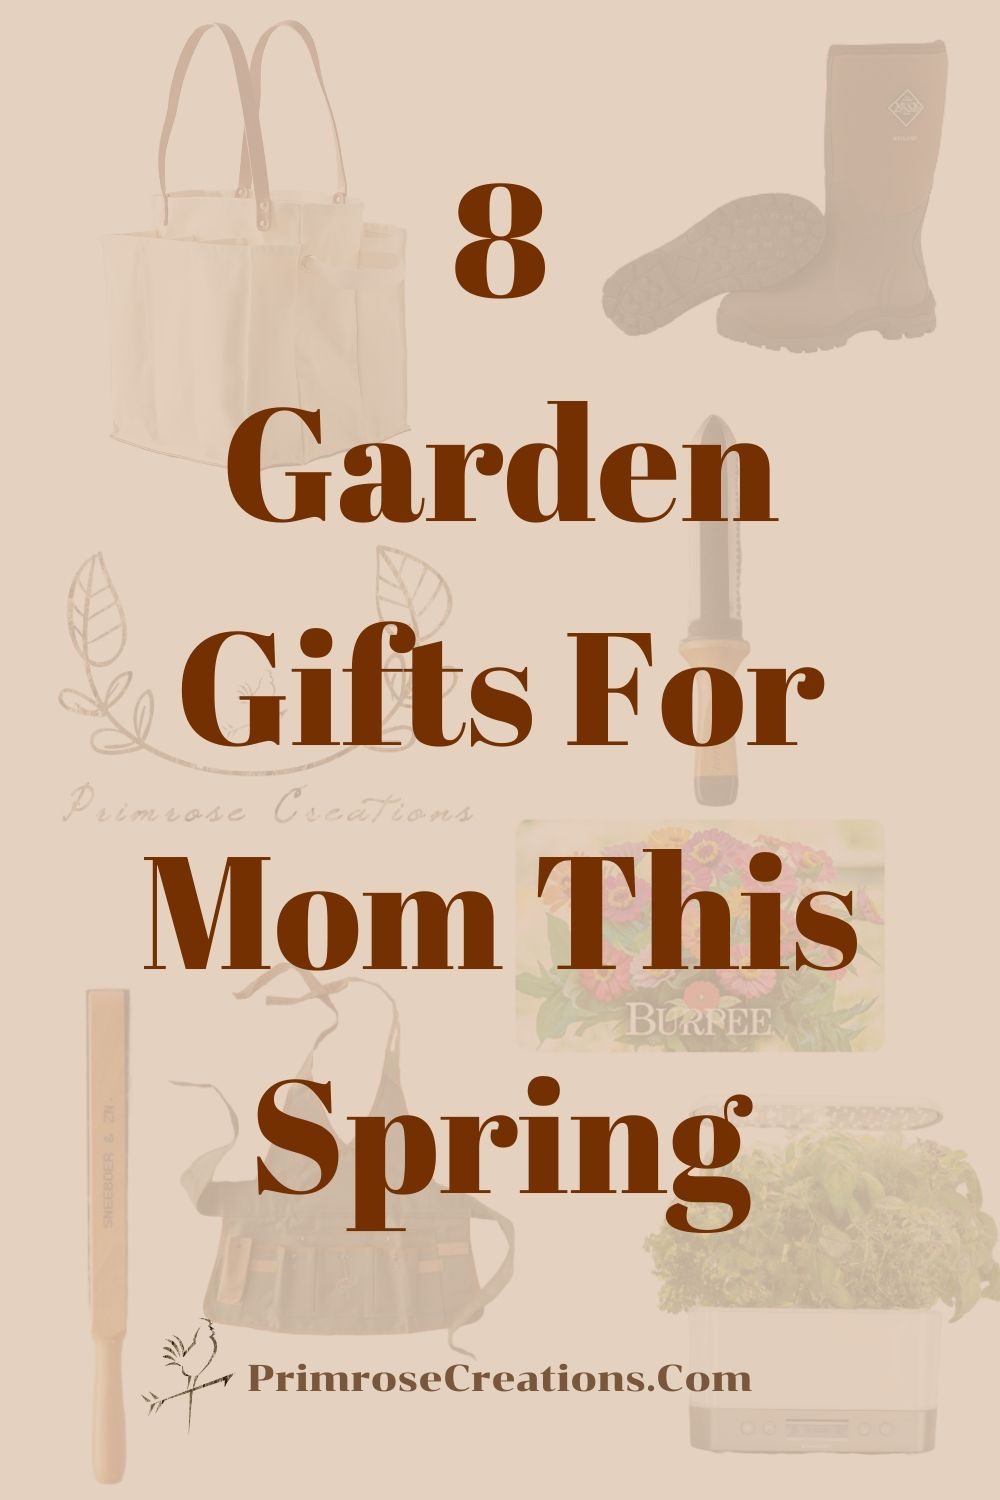 Giving gifts doesn't have to be limited to Mother's Day. From the great outdoors to the silence of self-care, we've got the ultimate list of them all! Here are our Top 8 Garden Gifts for mom this spring.